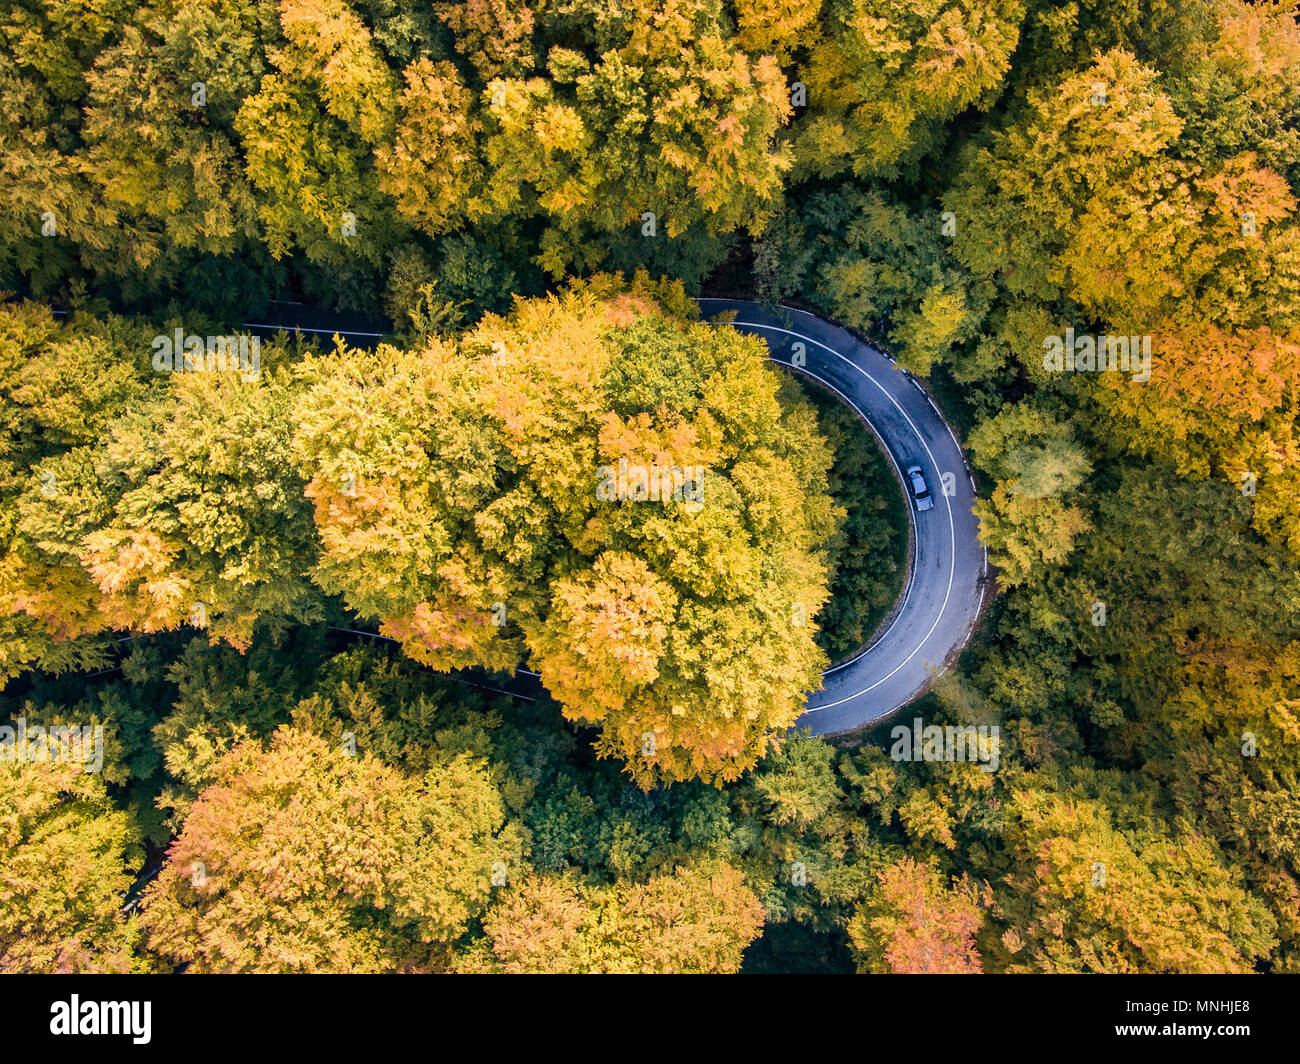 Road trip trough the forest on winding road in autumn season aerial view of a car on winding road - Stock Image